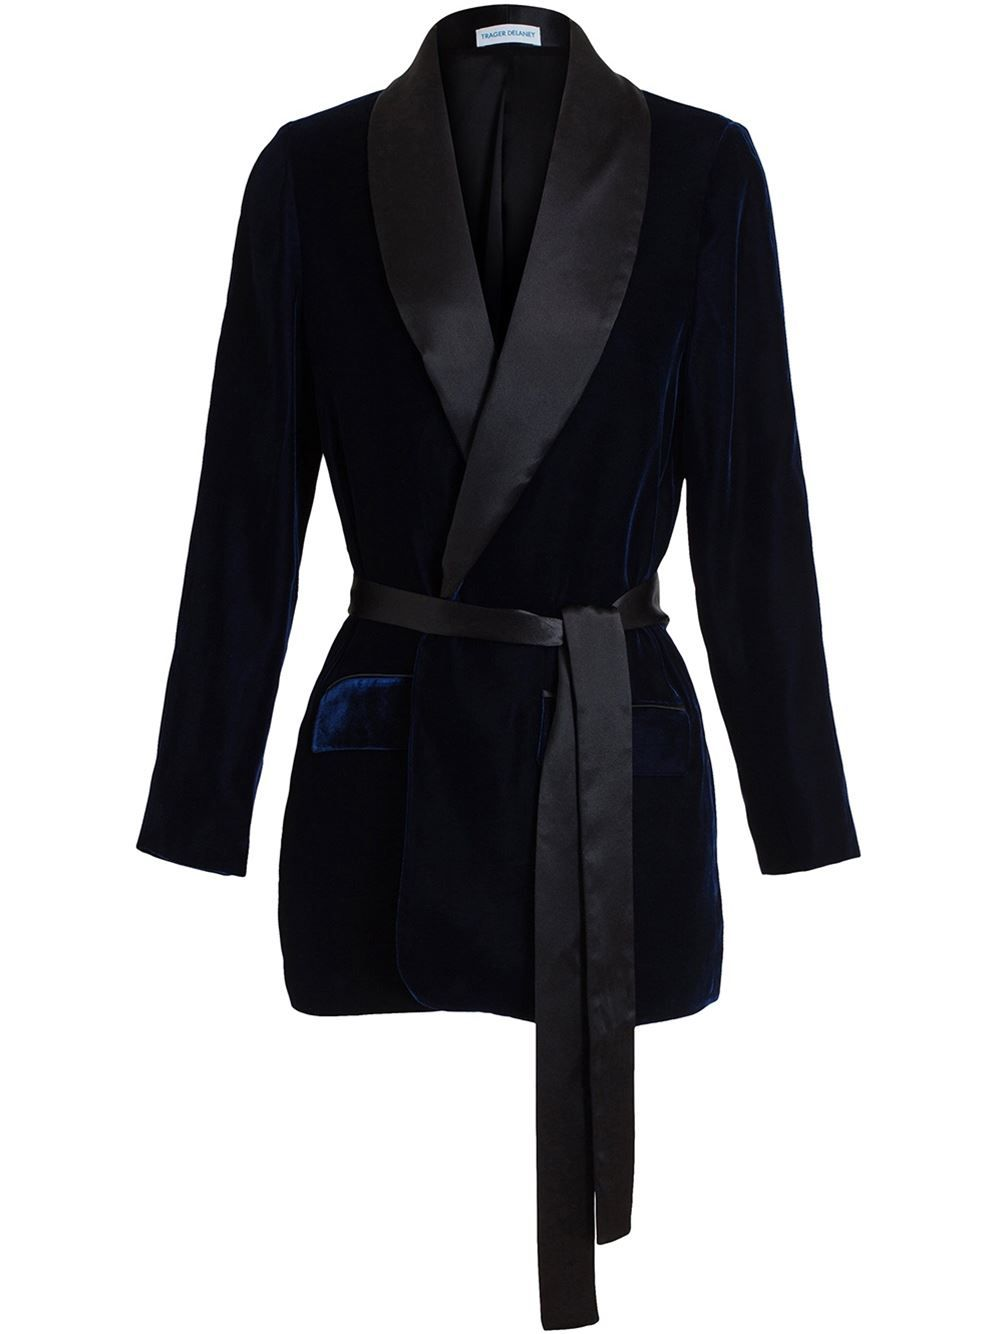 acb231a057d2c Women's Black Velvet Smoking Jacket in 2019 | Velvet | Smoking ...